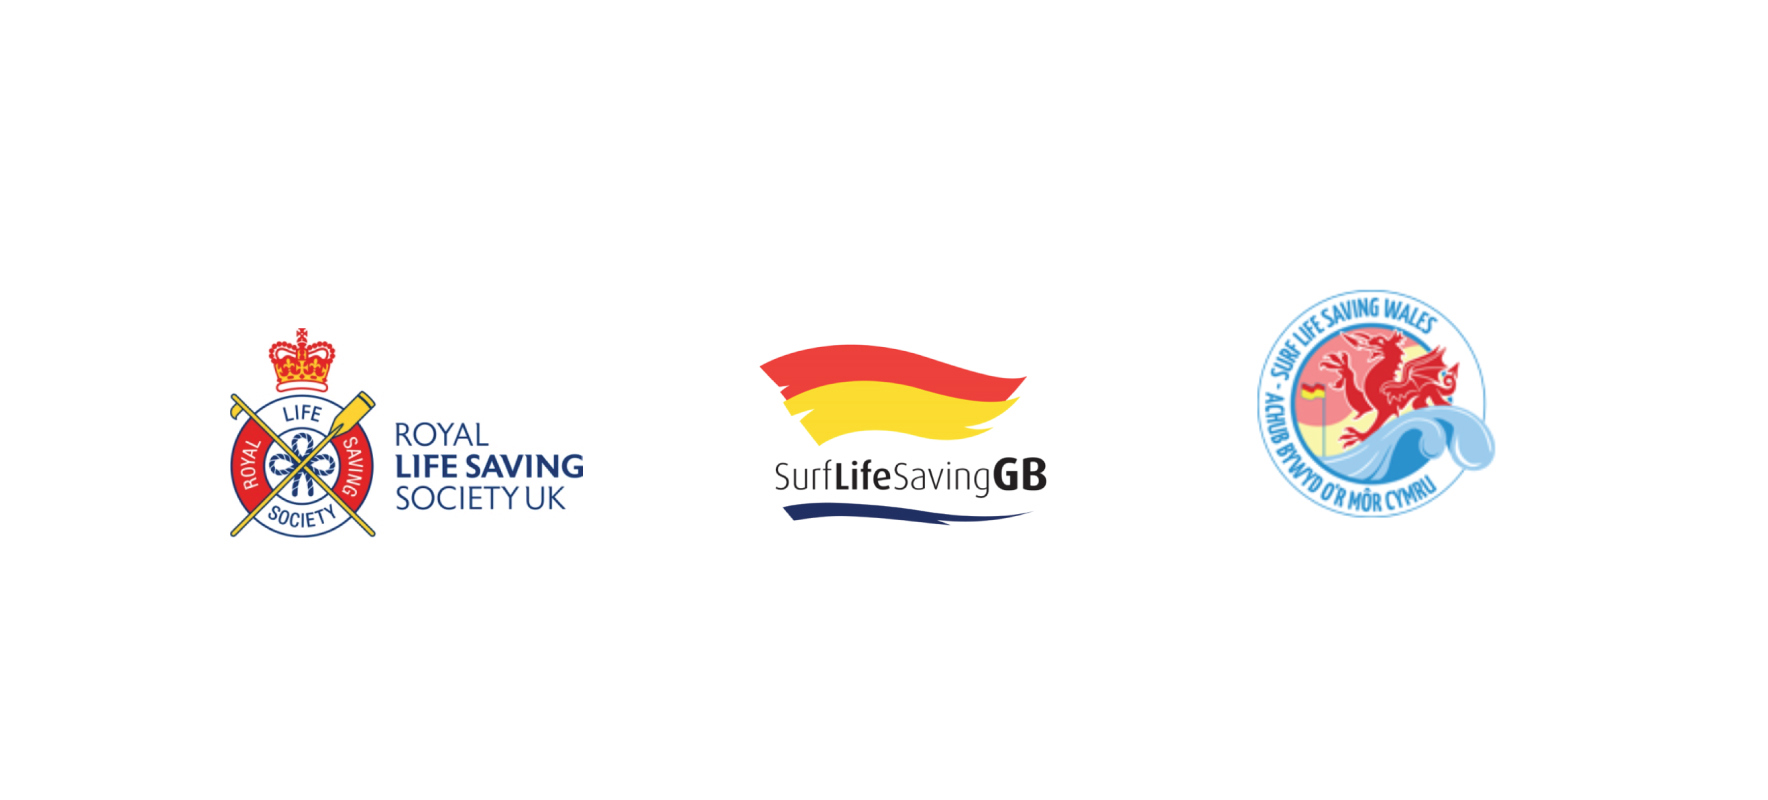 GBR Lifesaving Steering Group are pleased to announce the appointment of the new Management Team